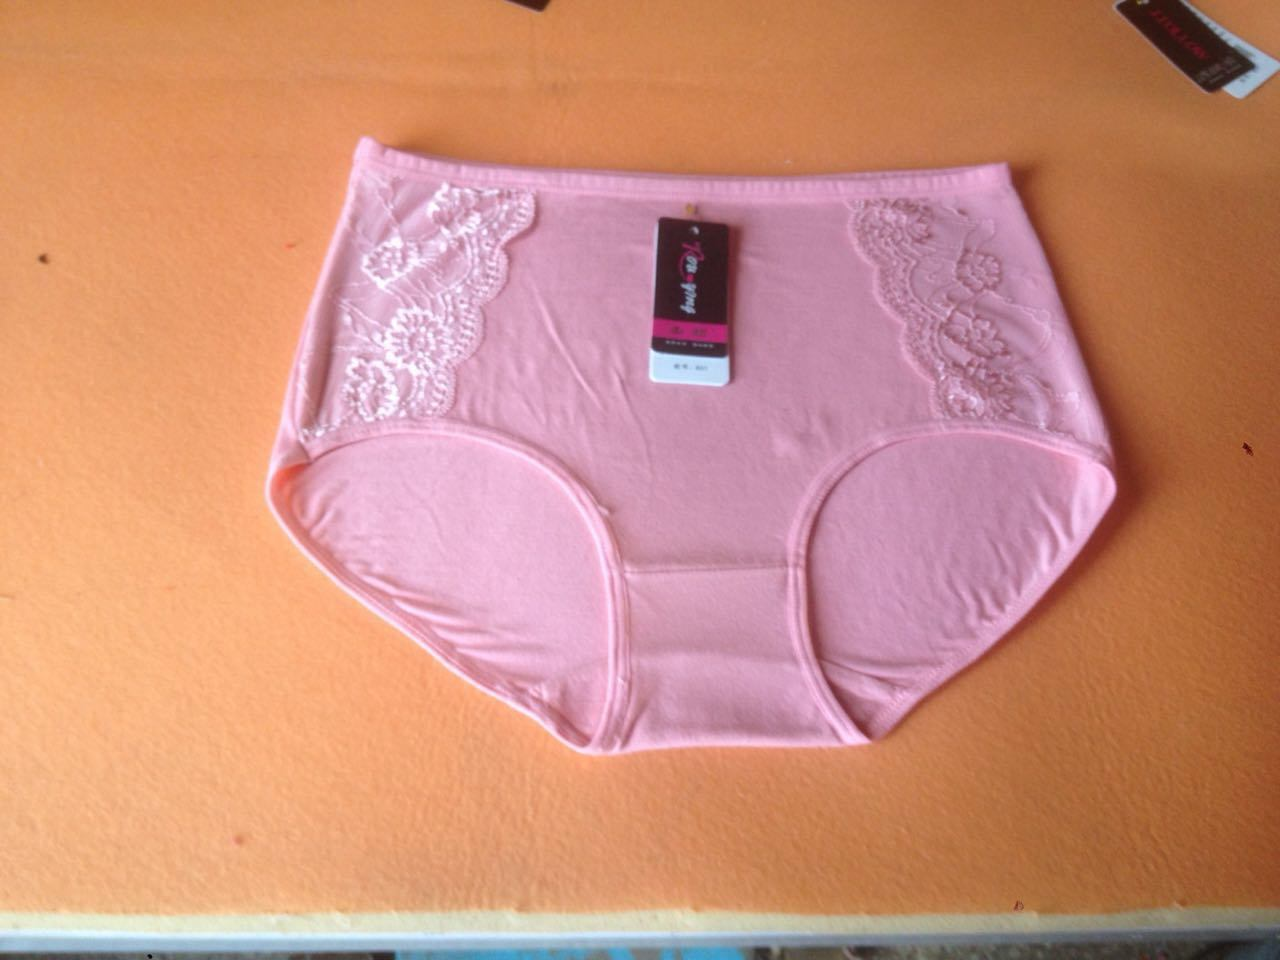 49b859130d61 Underwear - China Sexy Lingerie, Lingerie Manufacturers/Suppliers on  Made-in-China.com